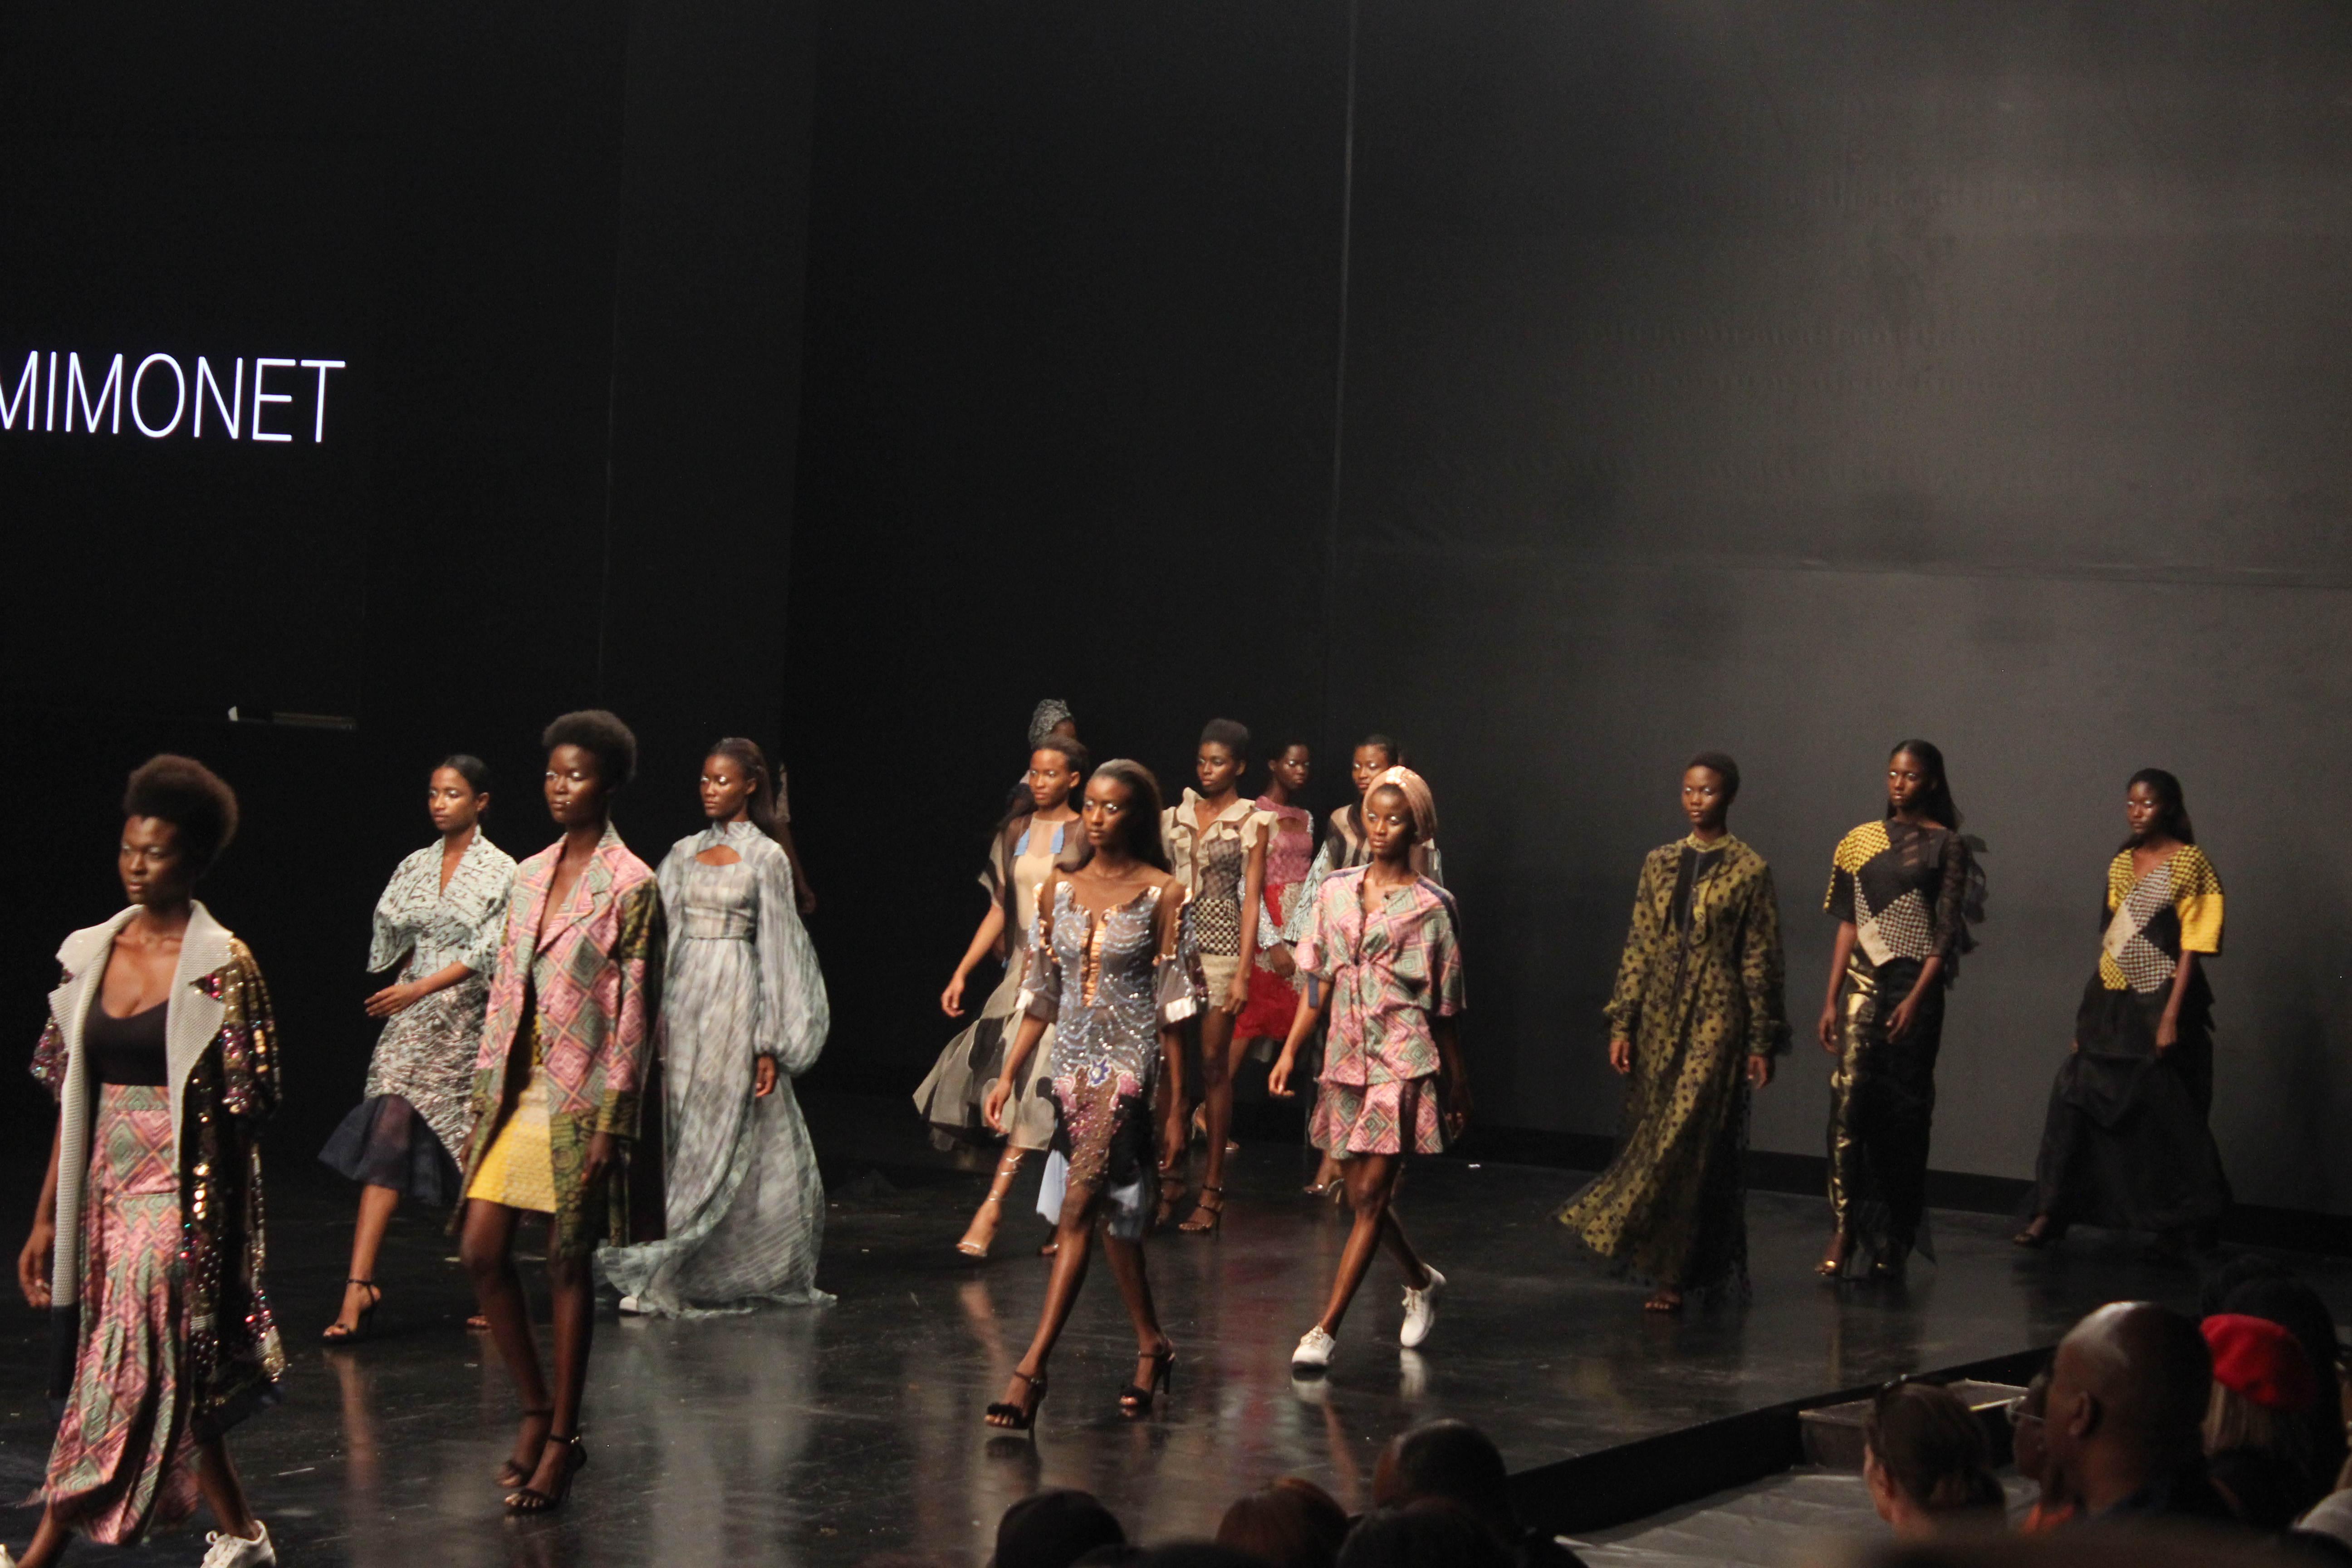 Odio Mimonet at Lagos Fashion Week 2018